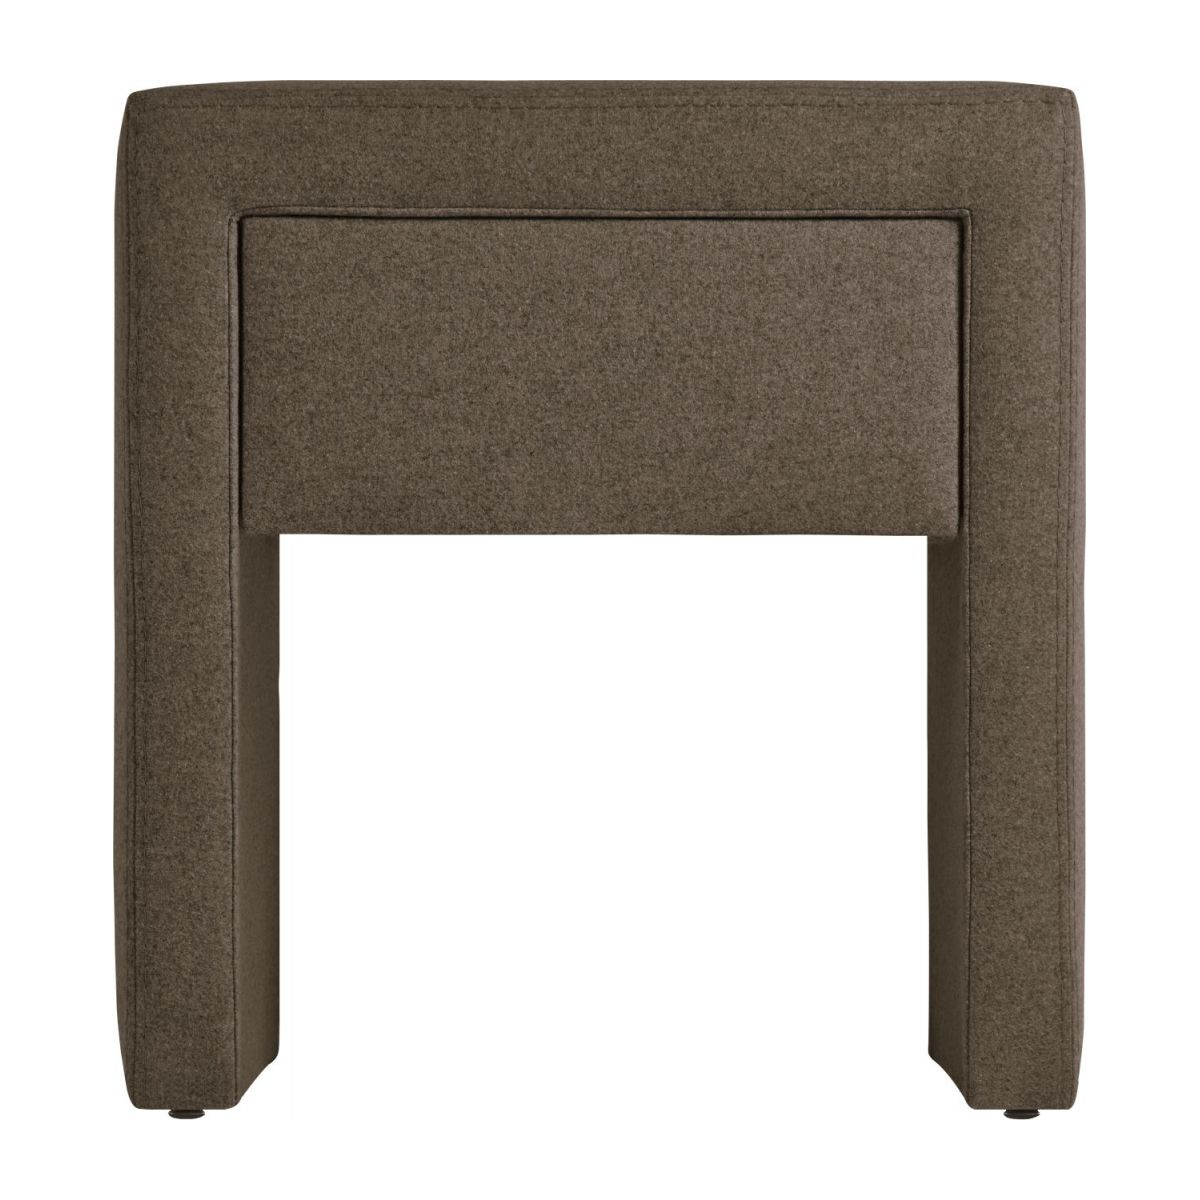 Table de chevet en feutrine - Beige n°4